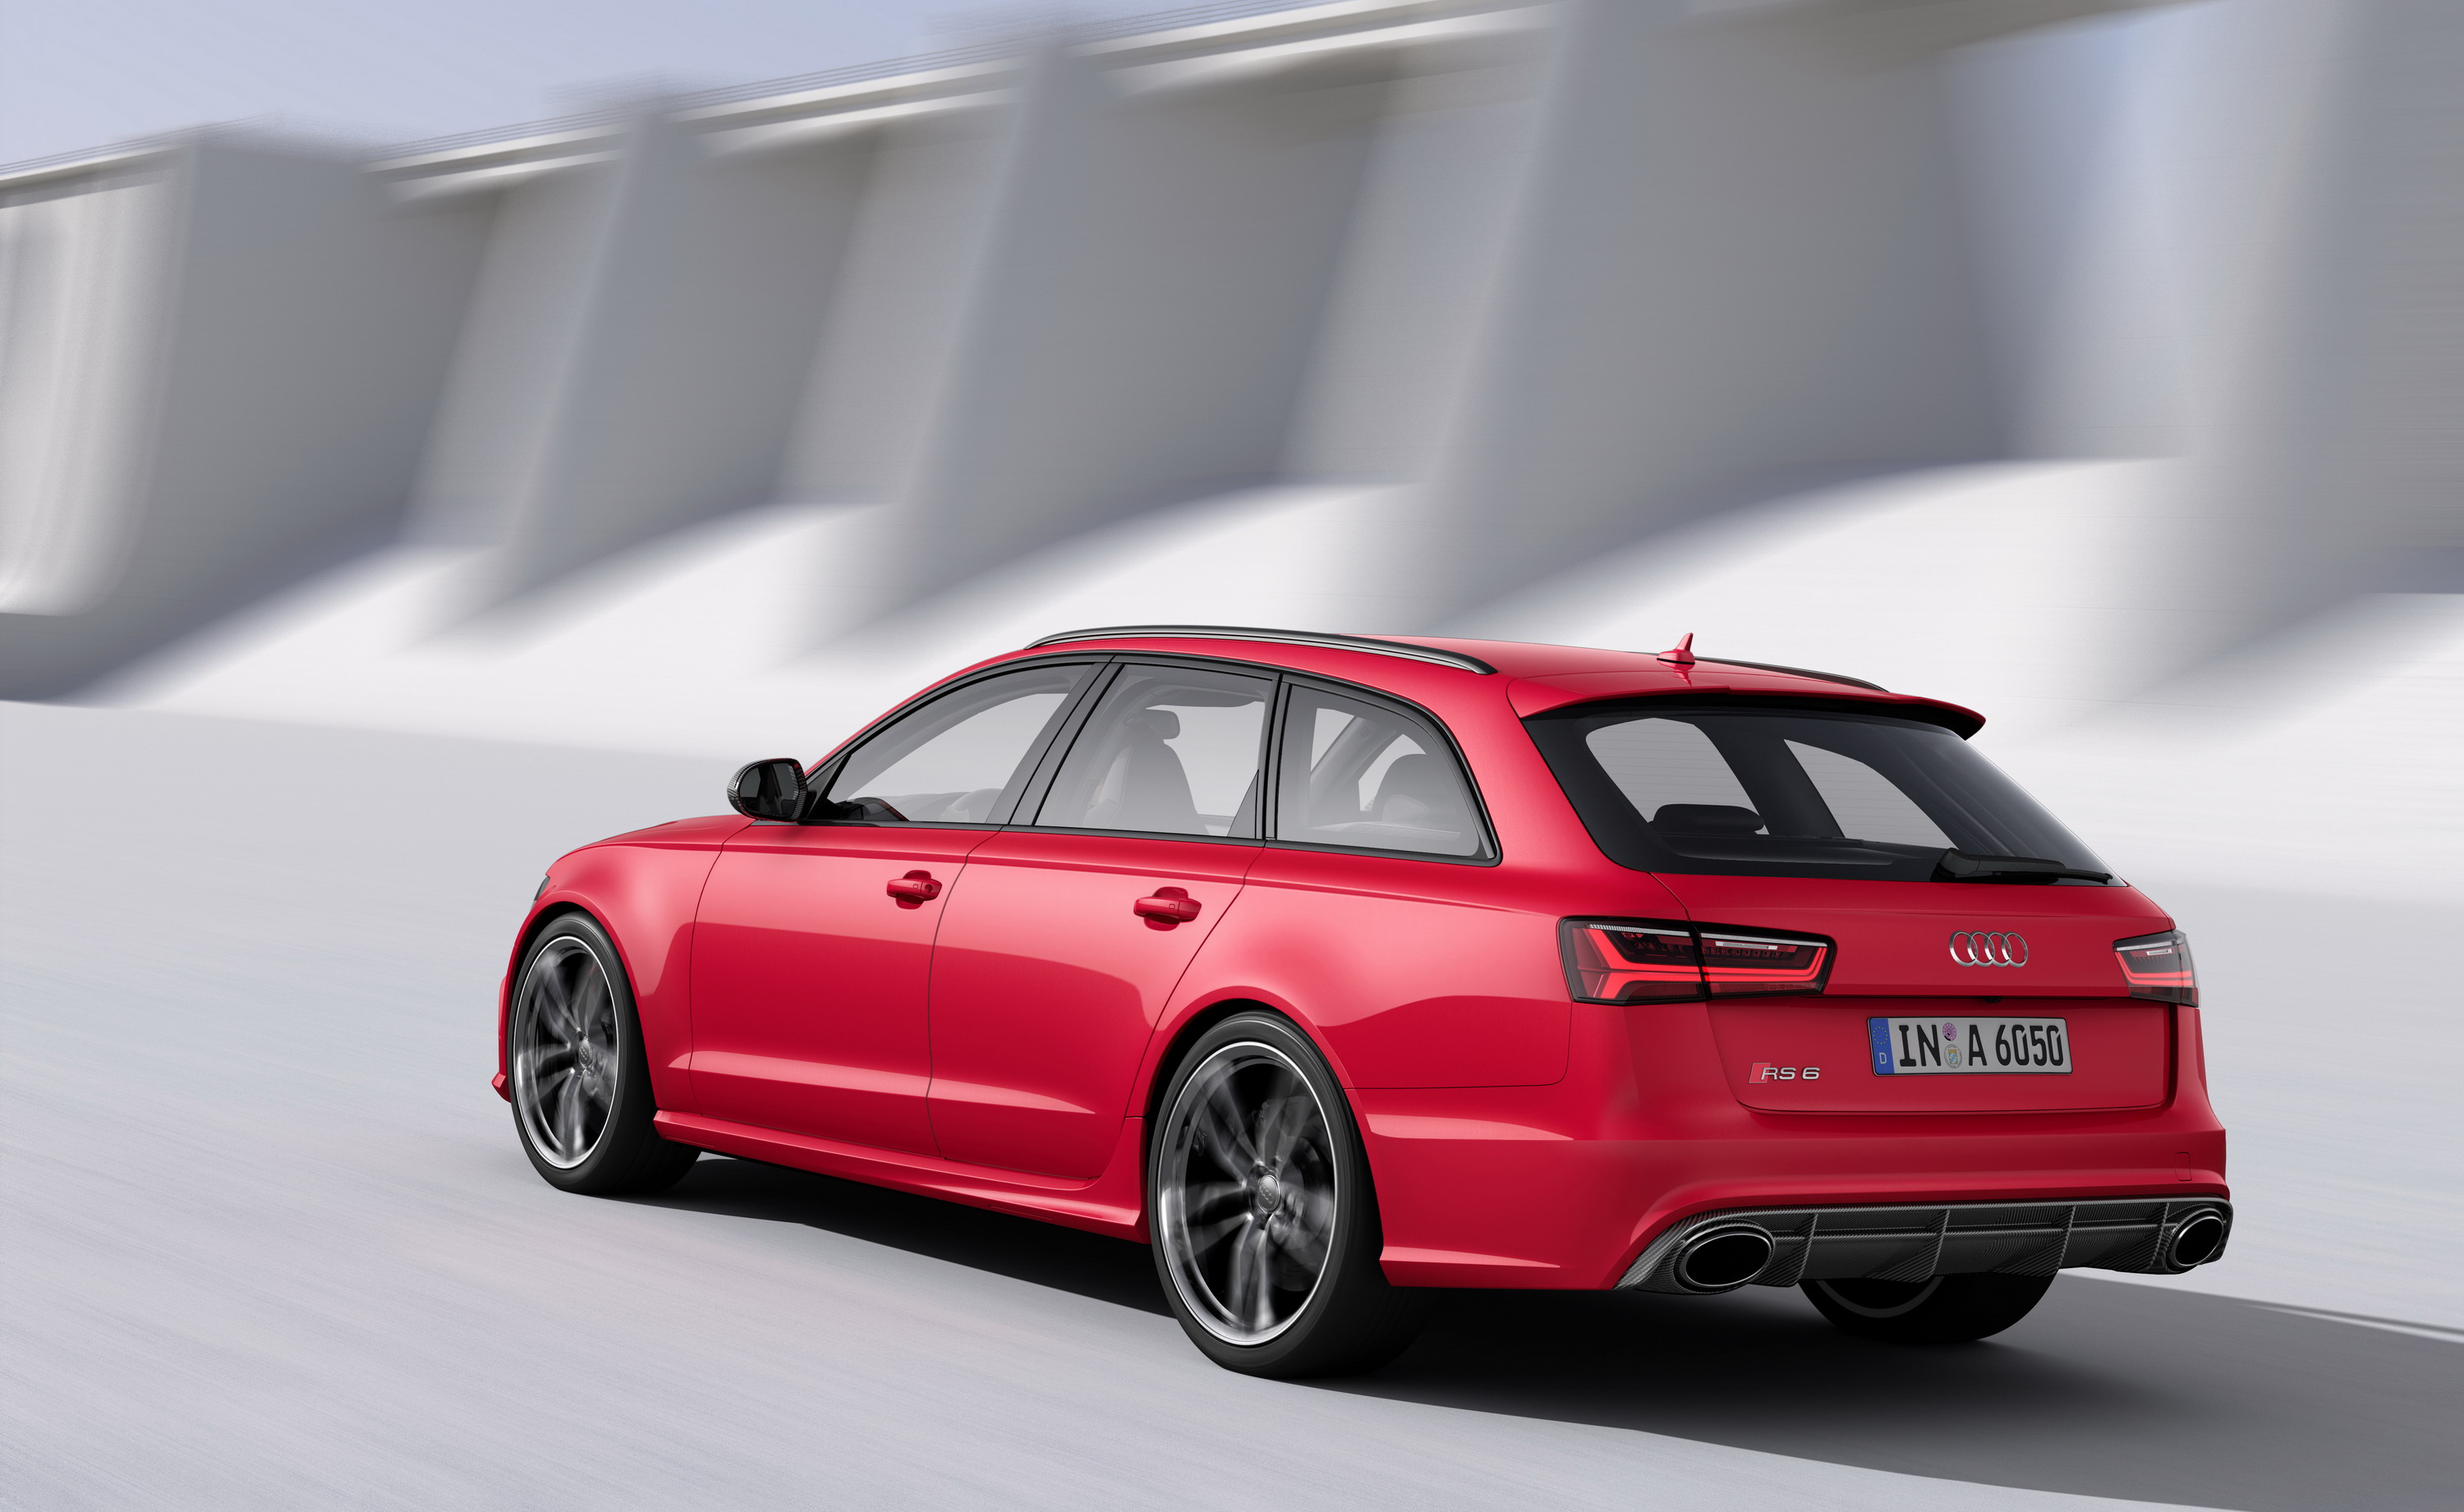 2015 audi rs6 avant gallery 567020 top speed. Black Bedroom Furniture Sets. Home Design Ideas